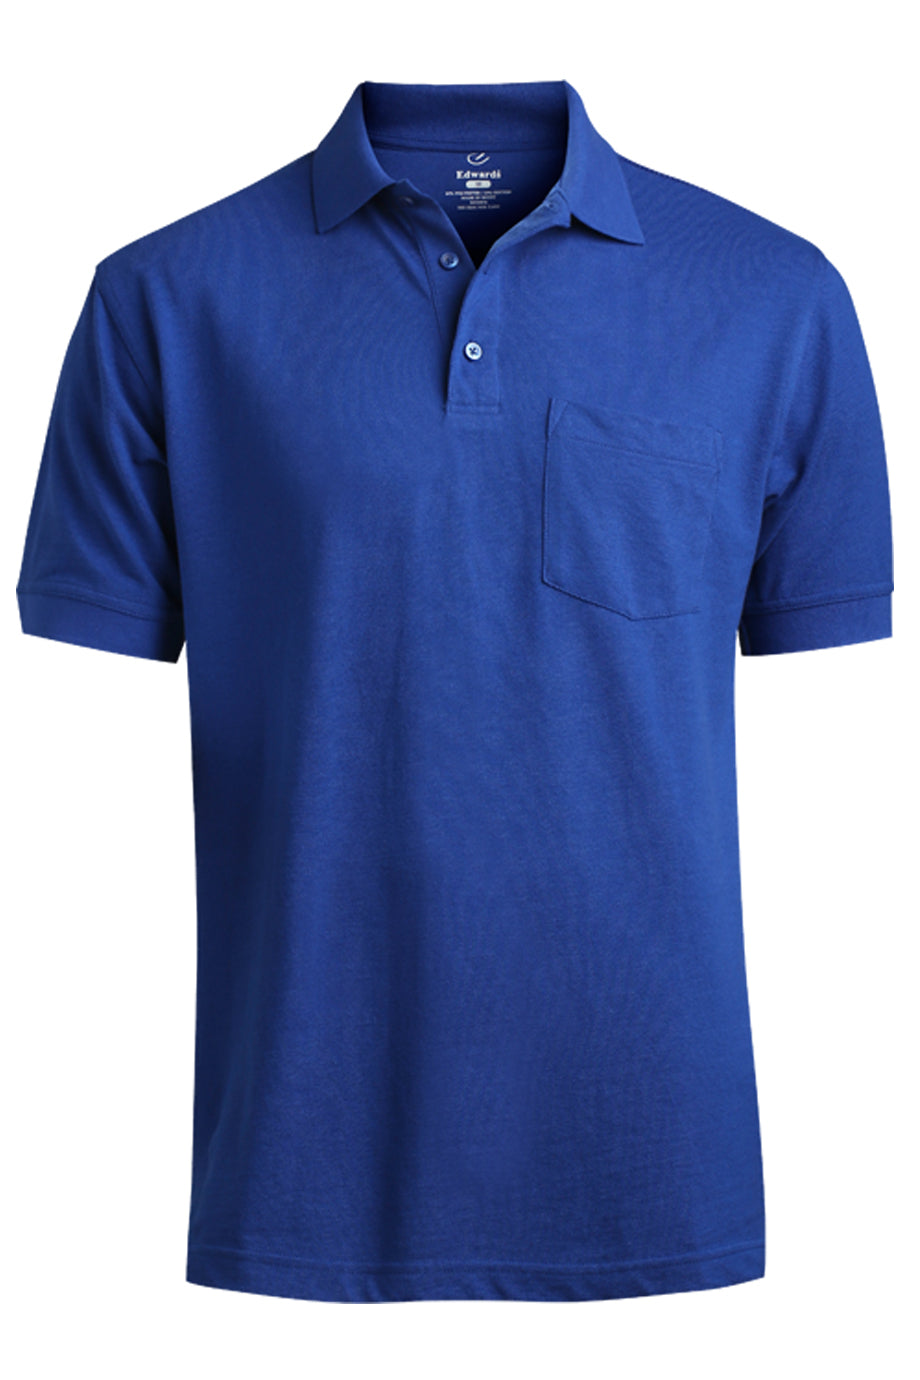 Royal Edwards Blended Pique Short Sleeve Polo With Pocket